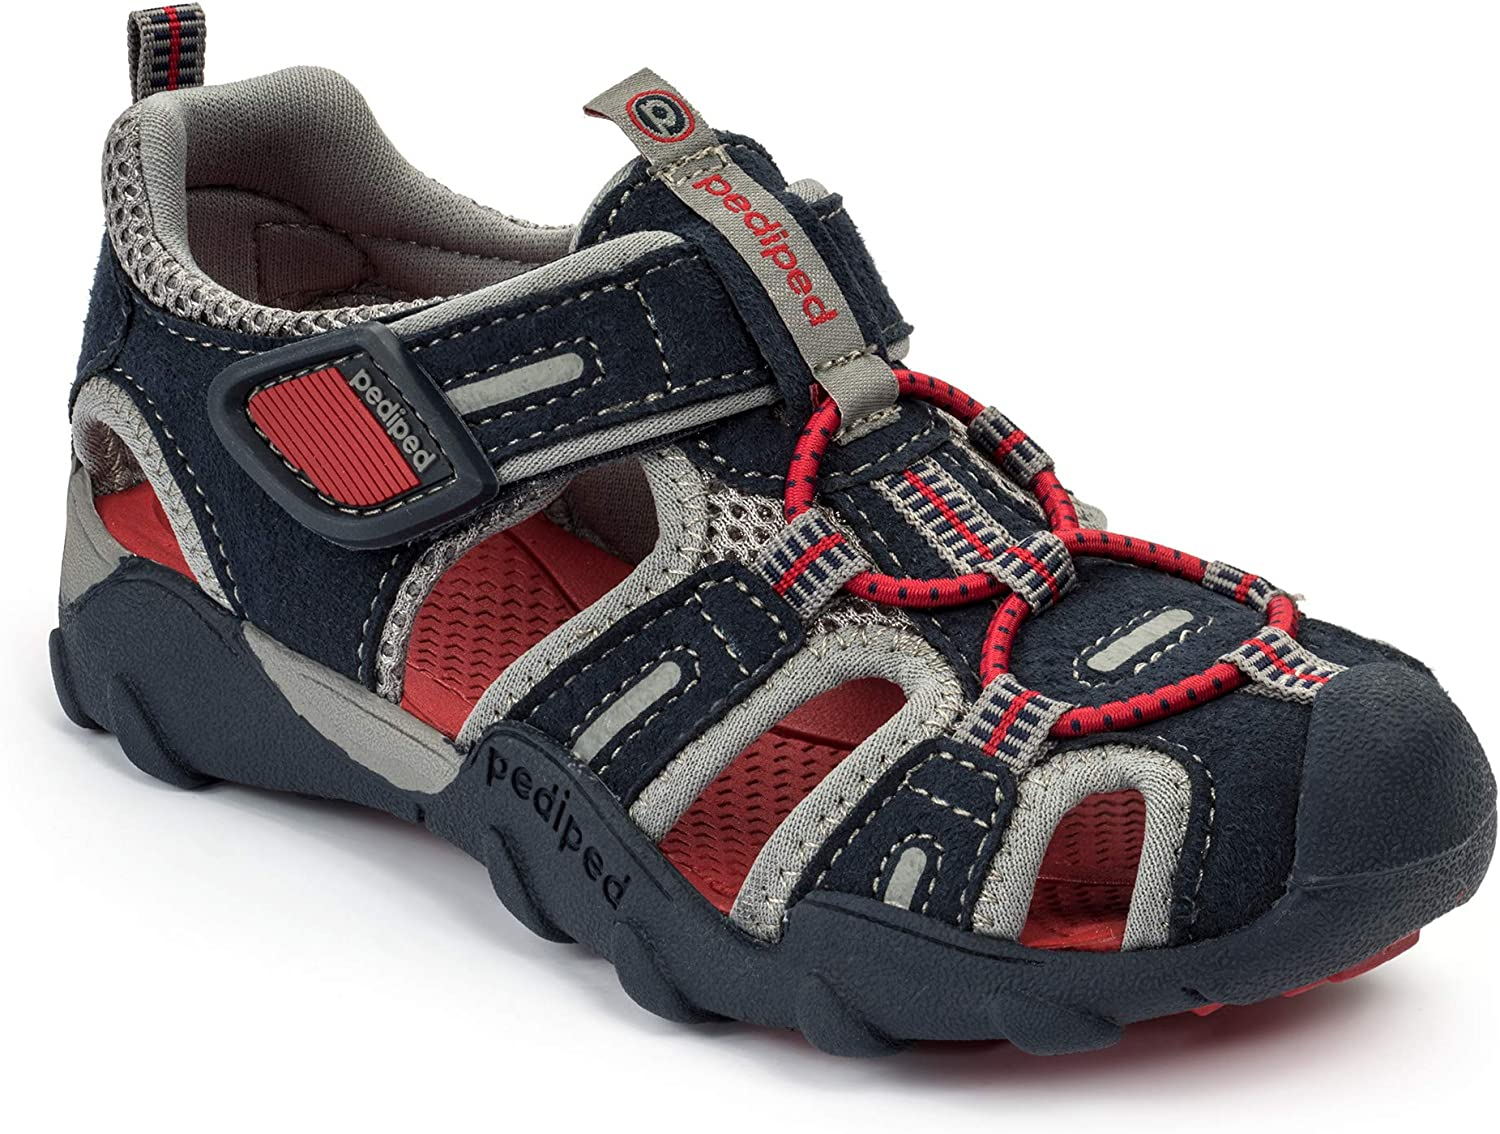 pediped Flex Canyon Water Sandal Dallas Mall Little Kid Toddler Big Sale special price